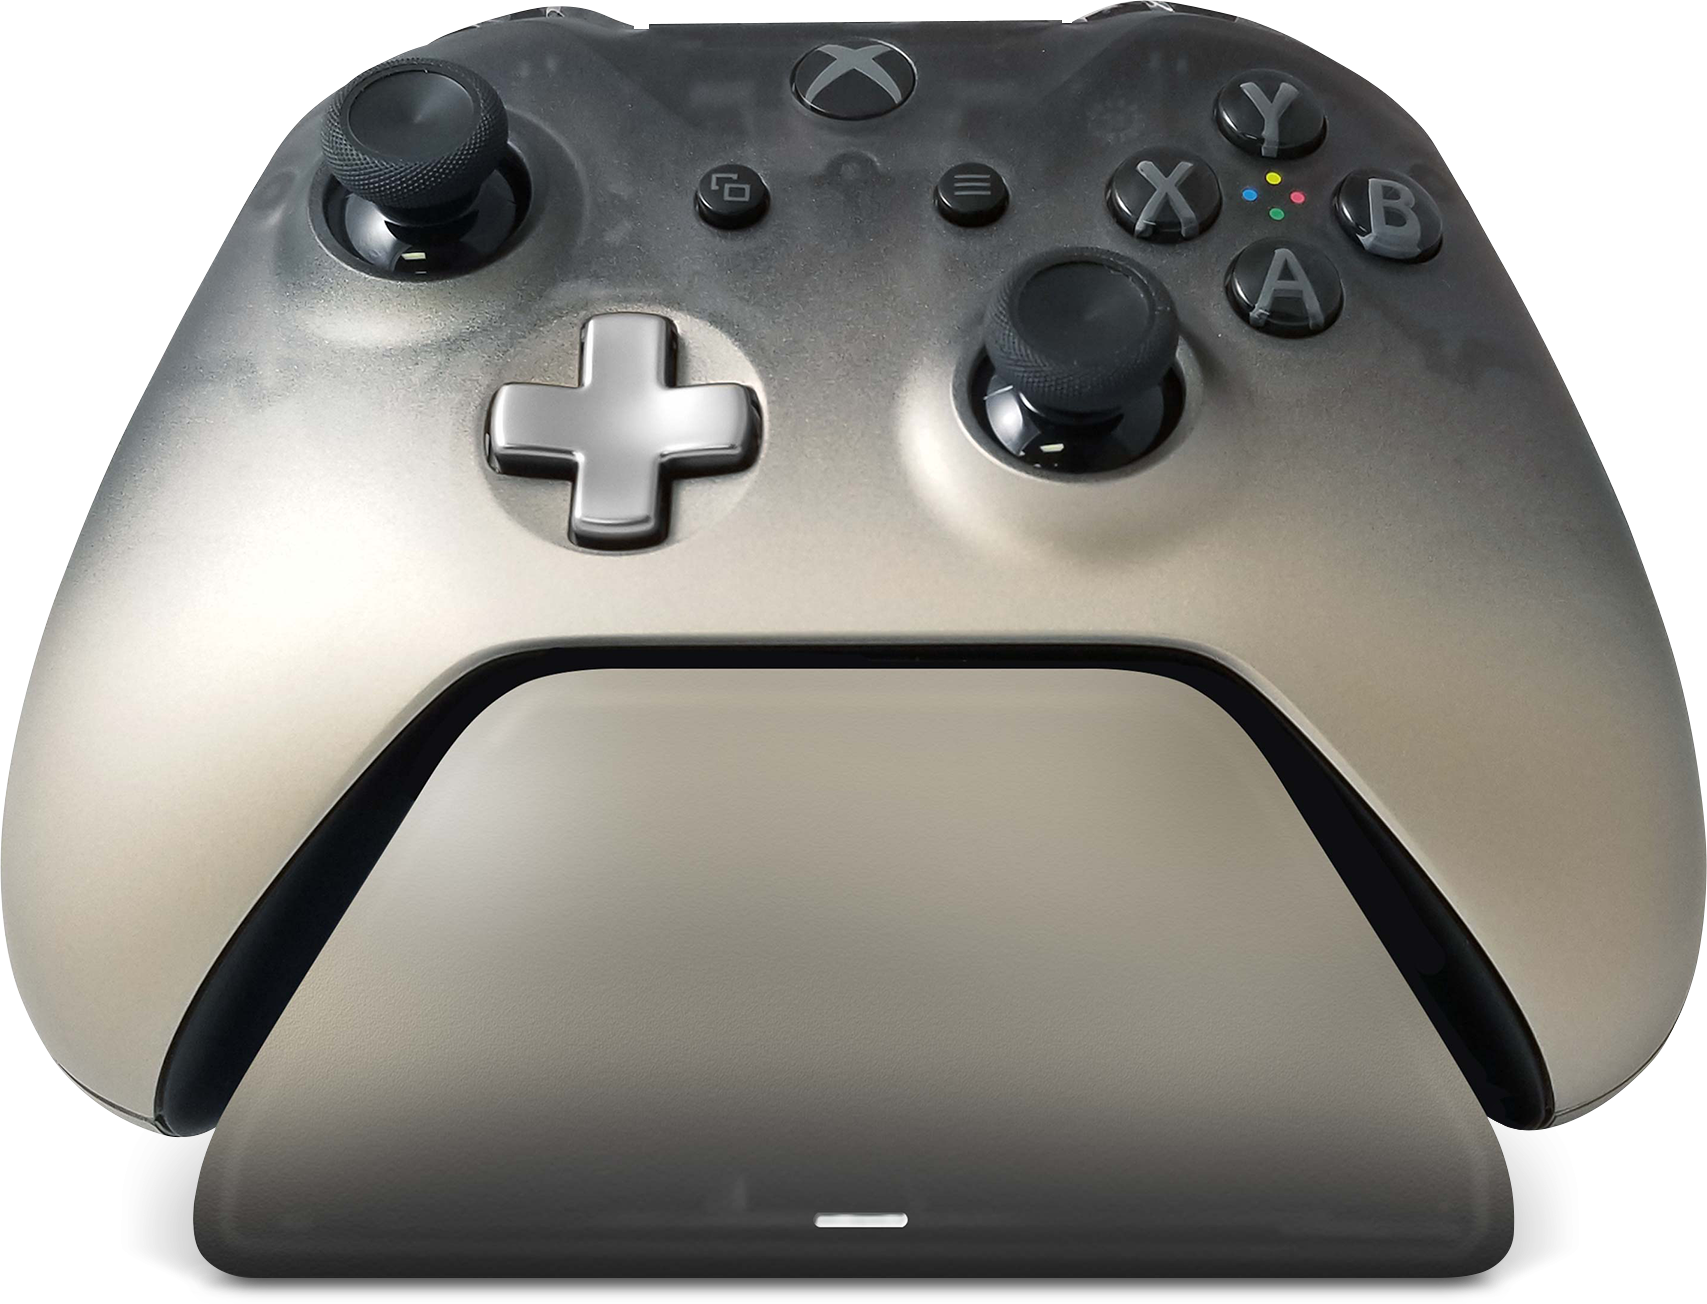 RE2JSM5?ver=48ae - Phantom Black Special Edition Xbox Pro Charging Stand